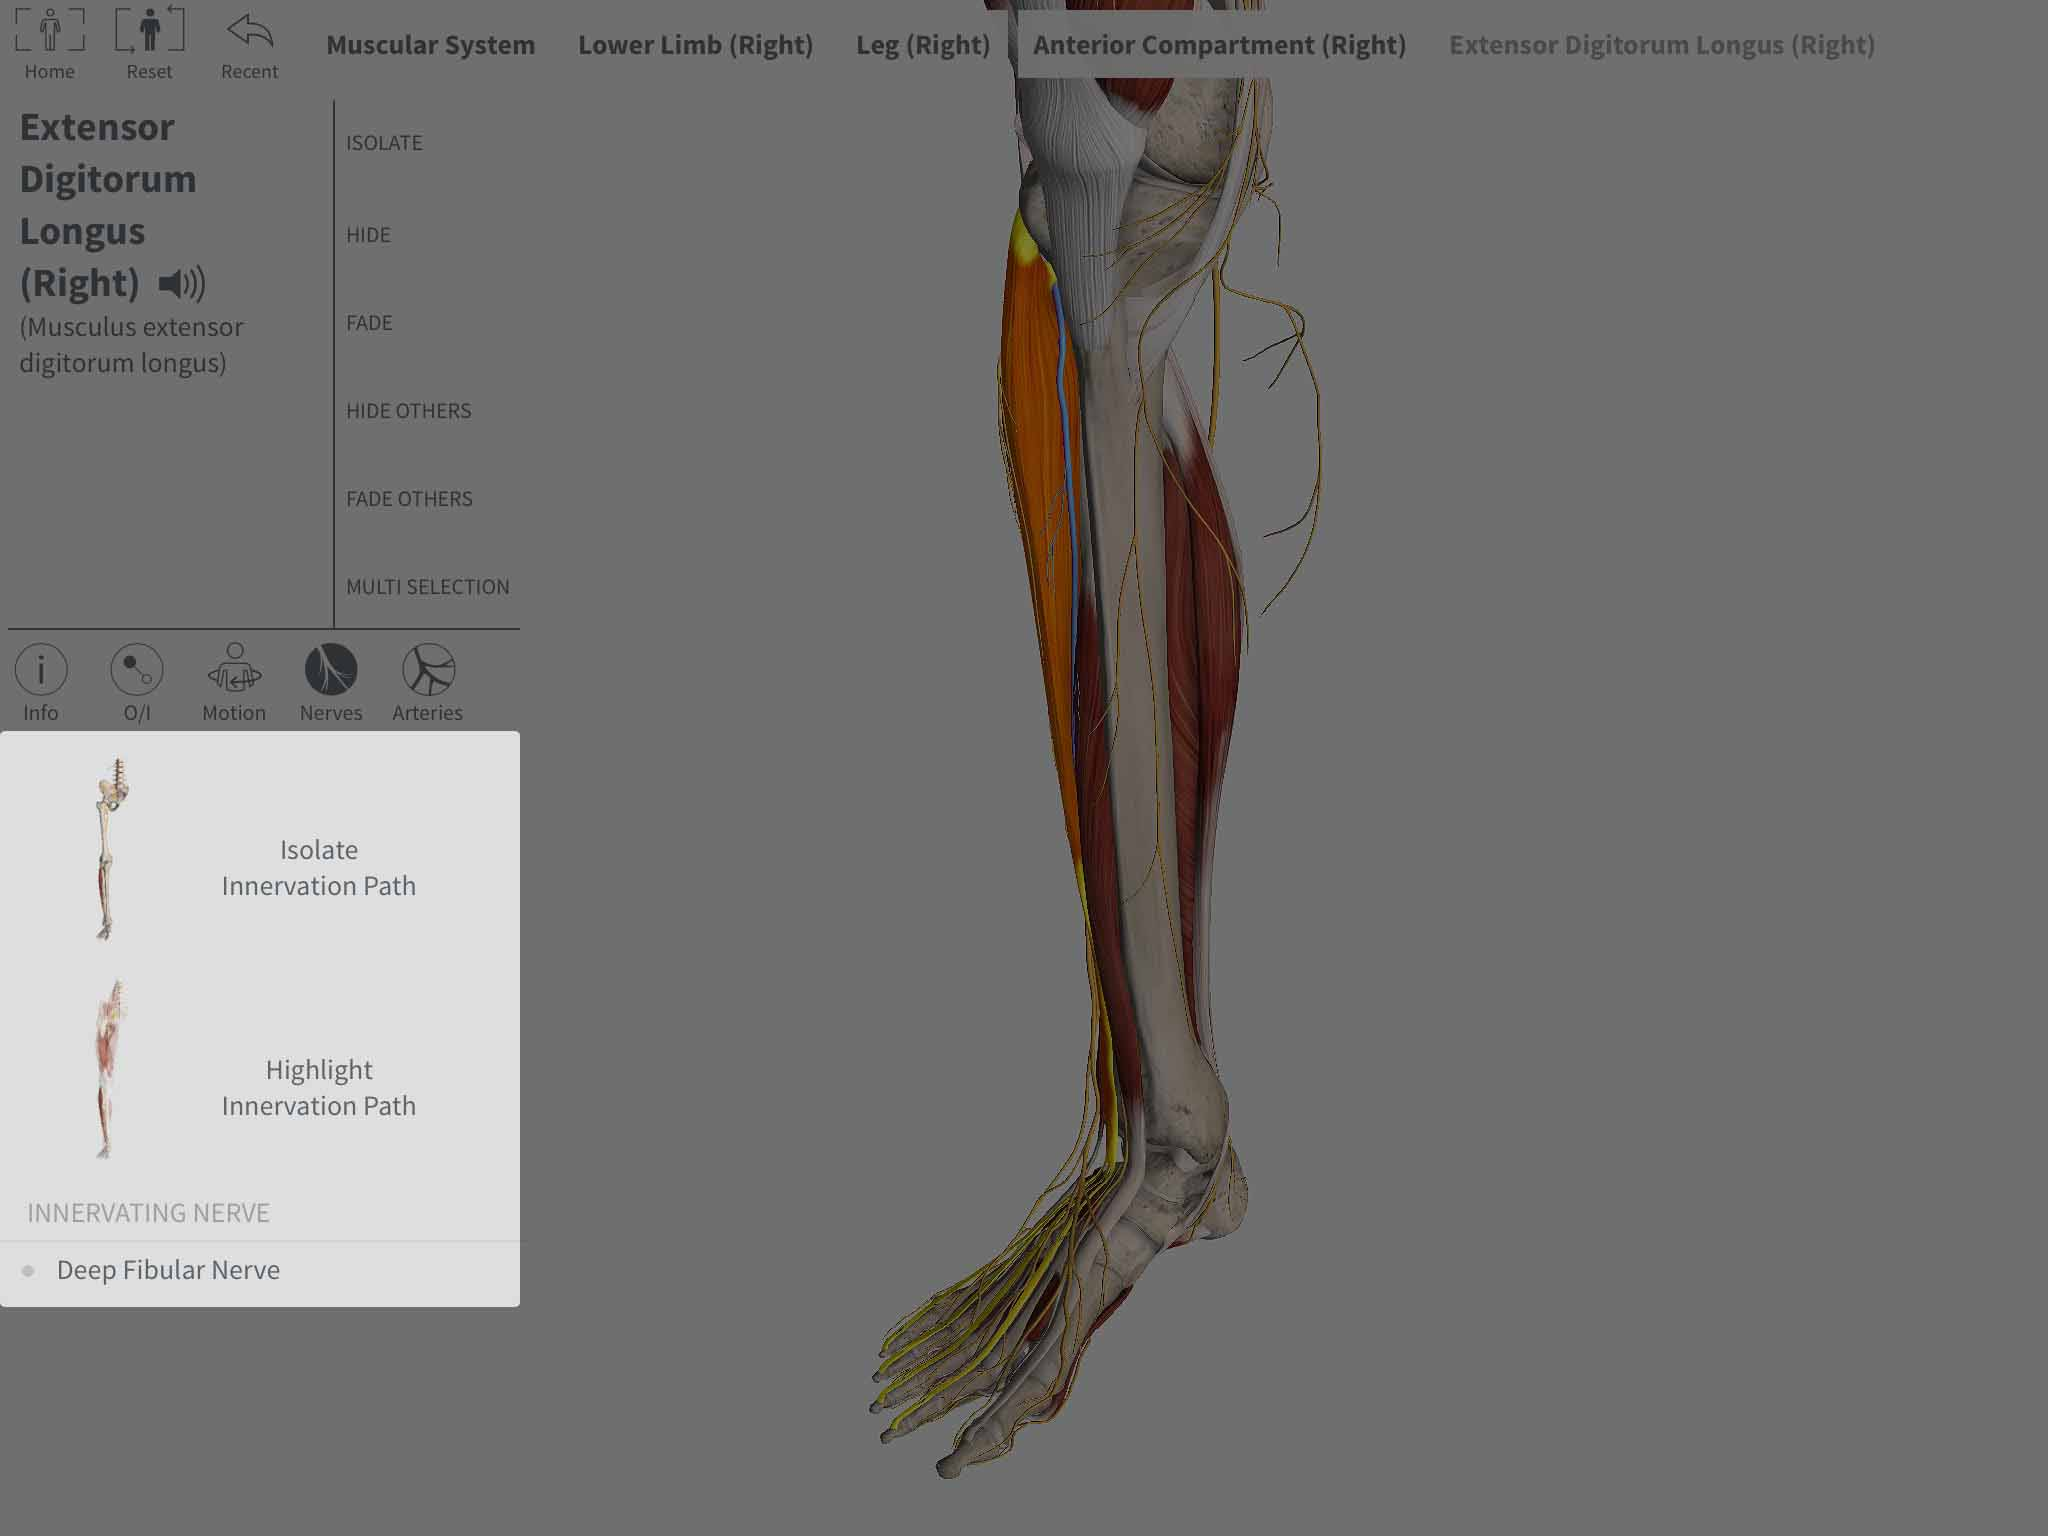 Selecting Innervation